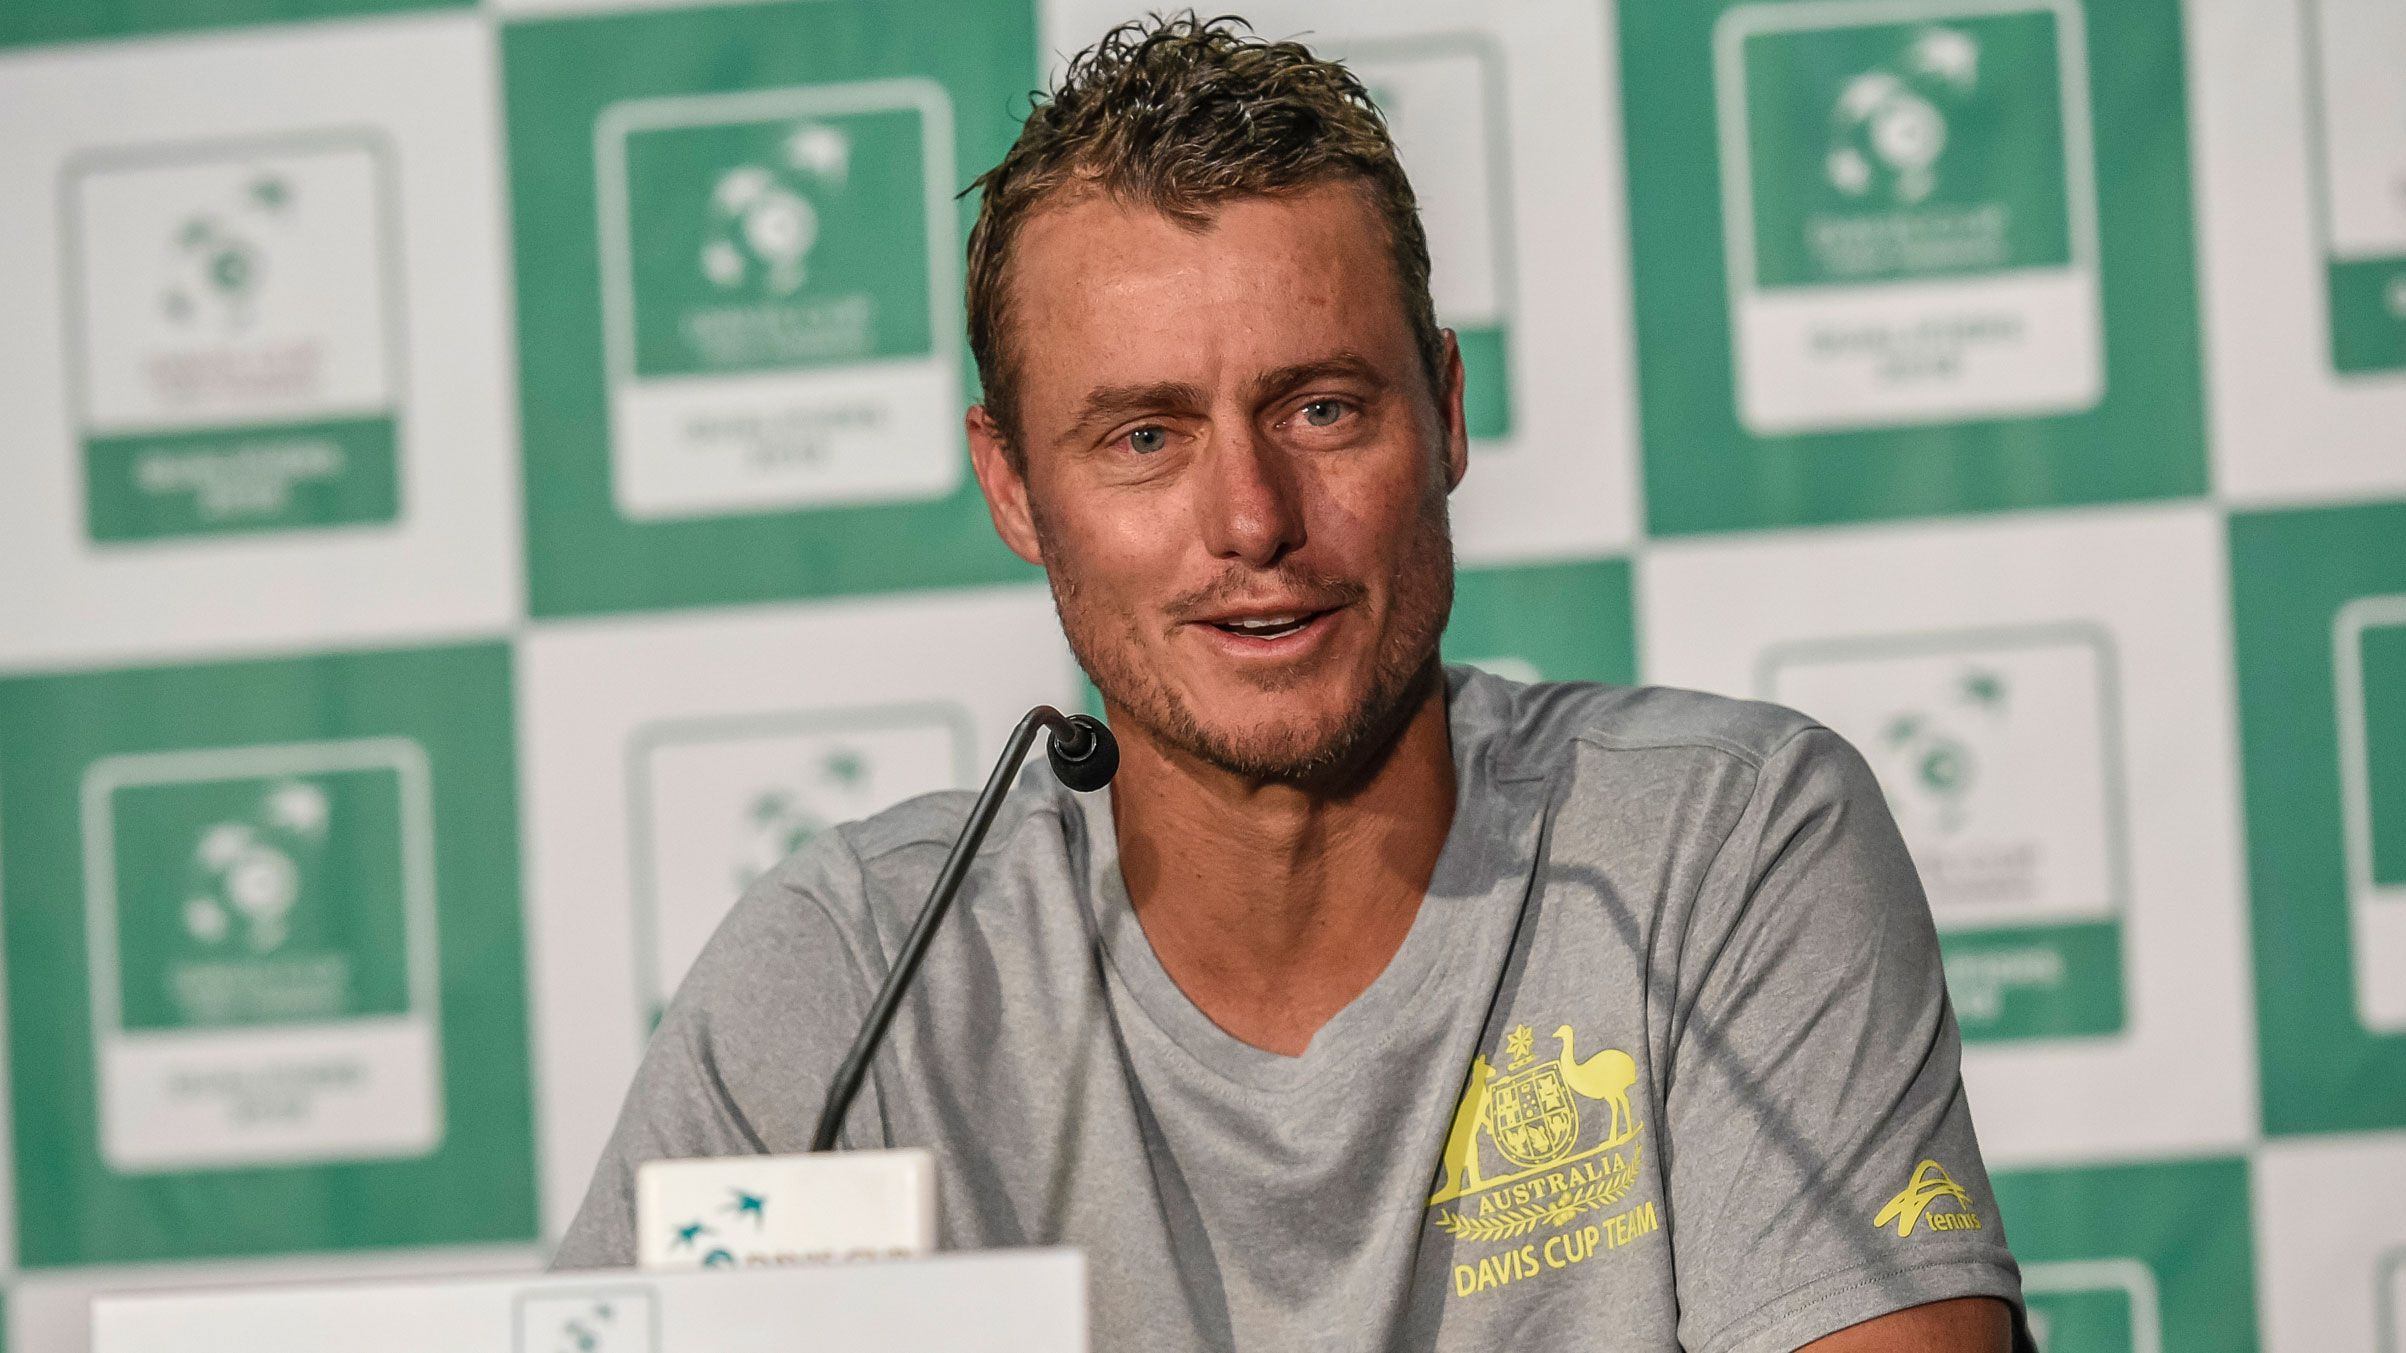 Lleyton Hewitt gives stirring speech ahead of Australia vs Bosnia Herzegovina Davis Cup tie